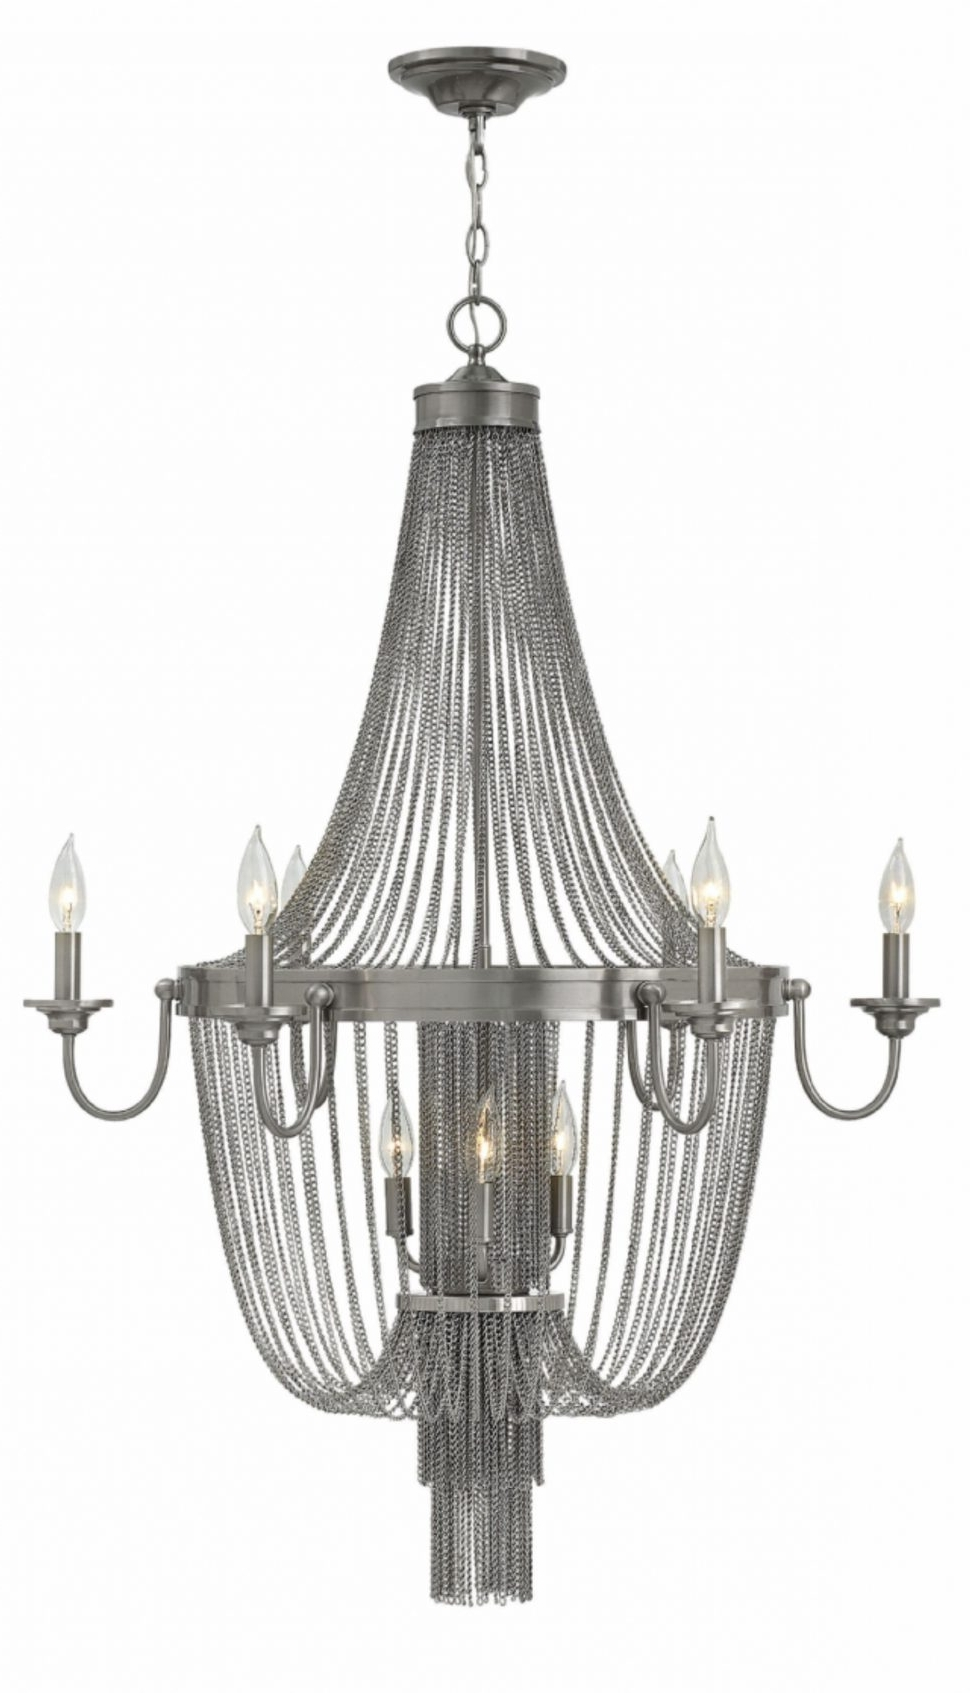 2019 Contemporary Black Chandelier With Chandeliers Design : Amazing Contemporary Black Chandelier Lighting (View 18 of 20)